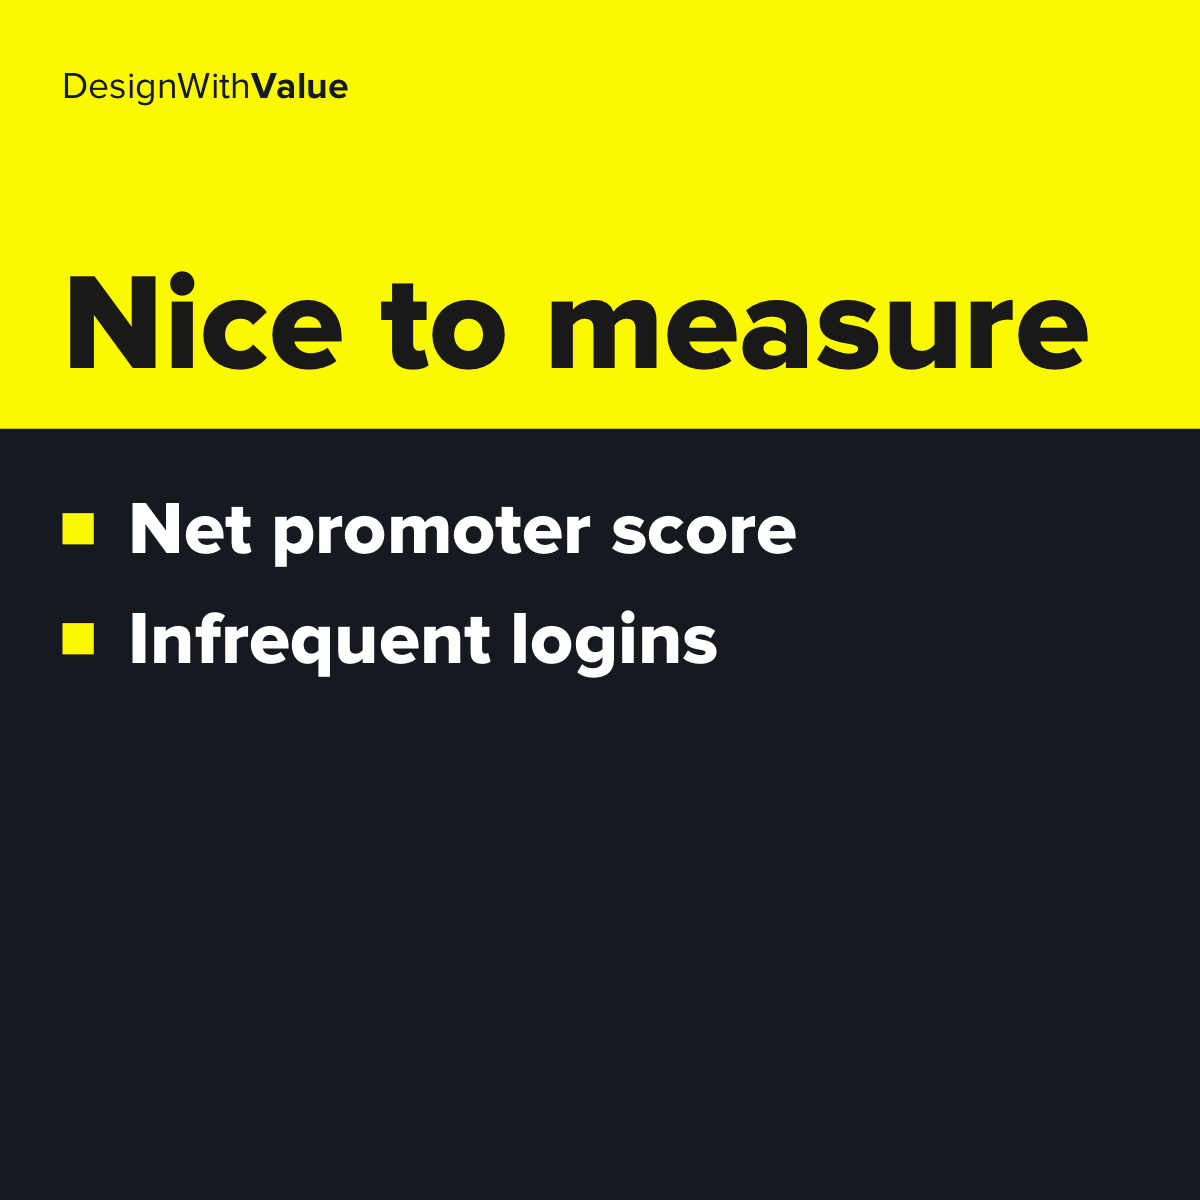 Nice to measure metrics: Net promoter score, infrequent logins